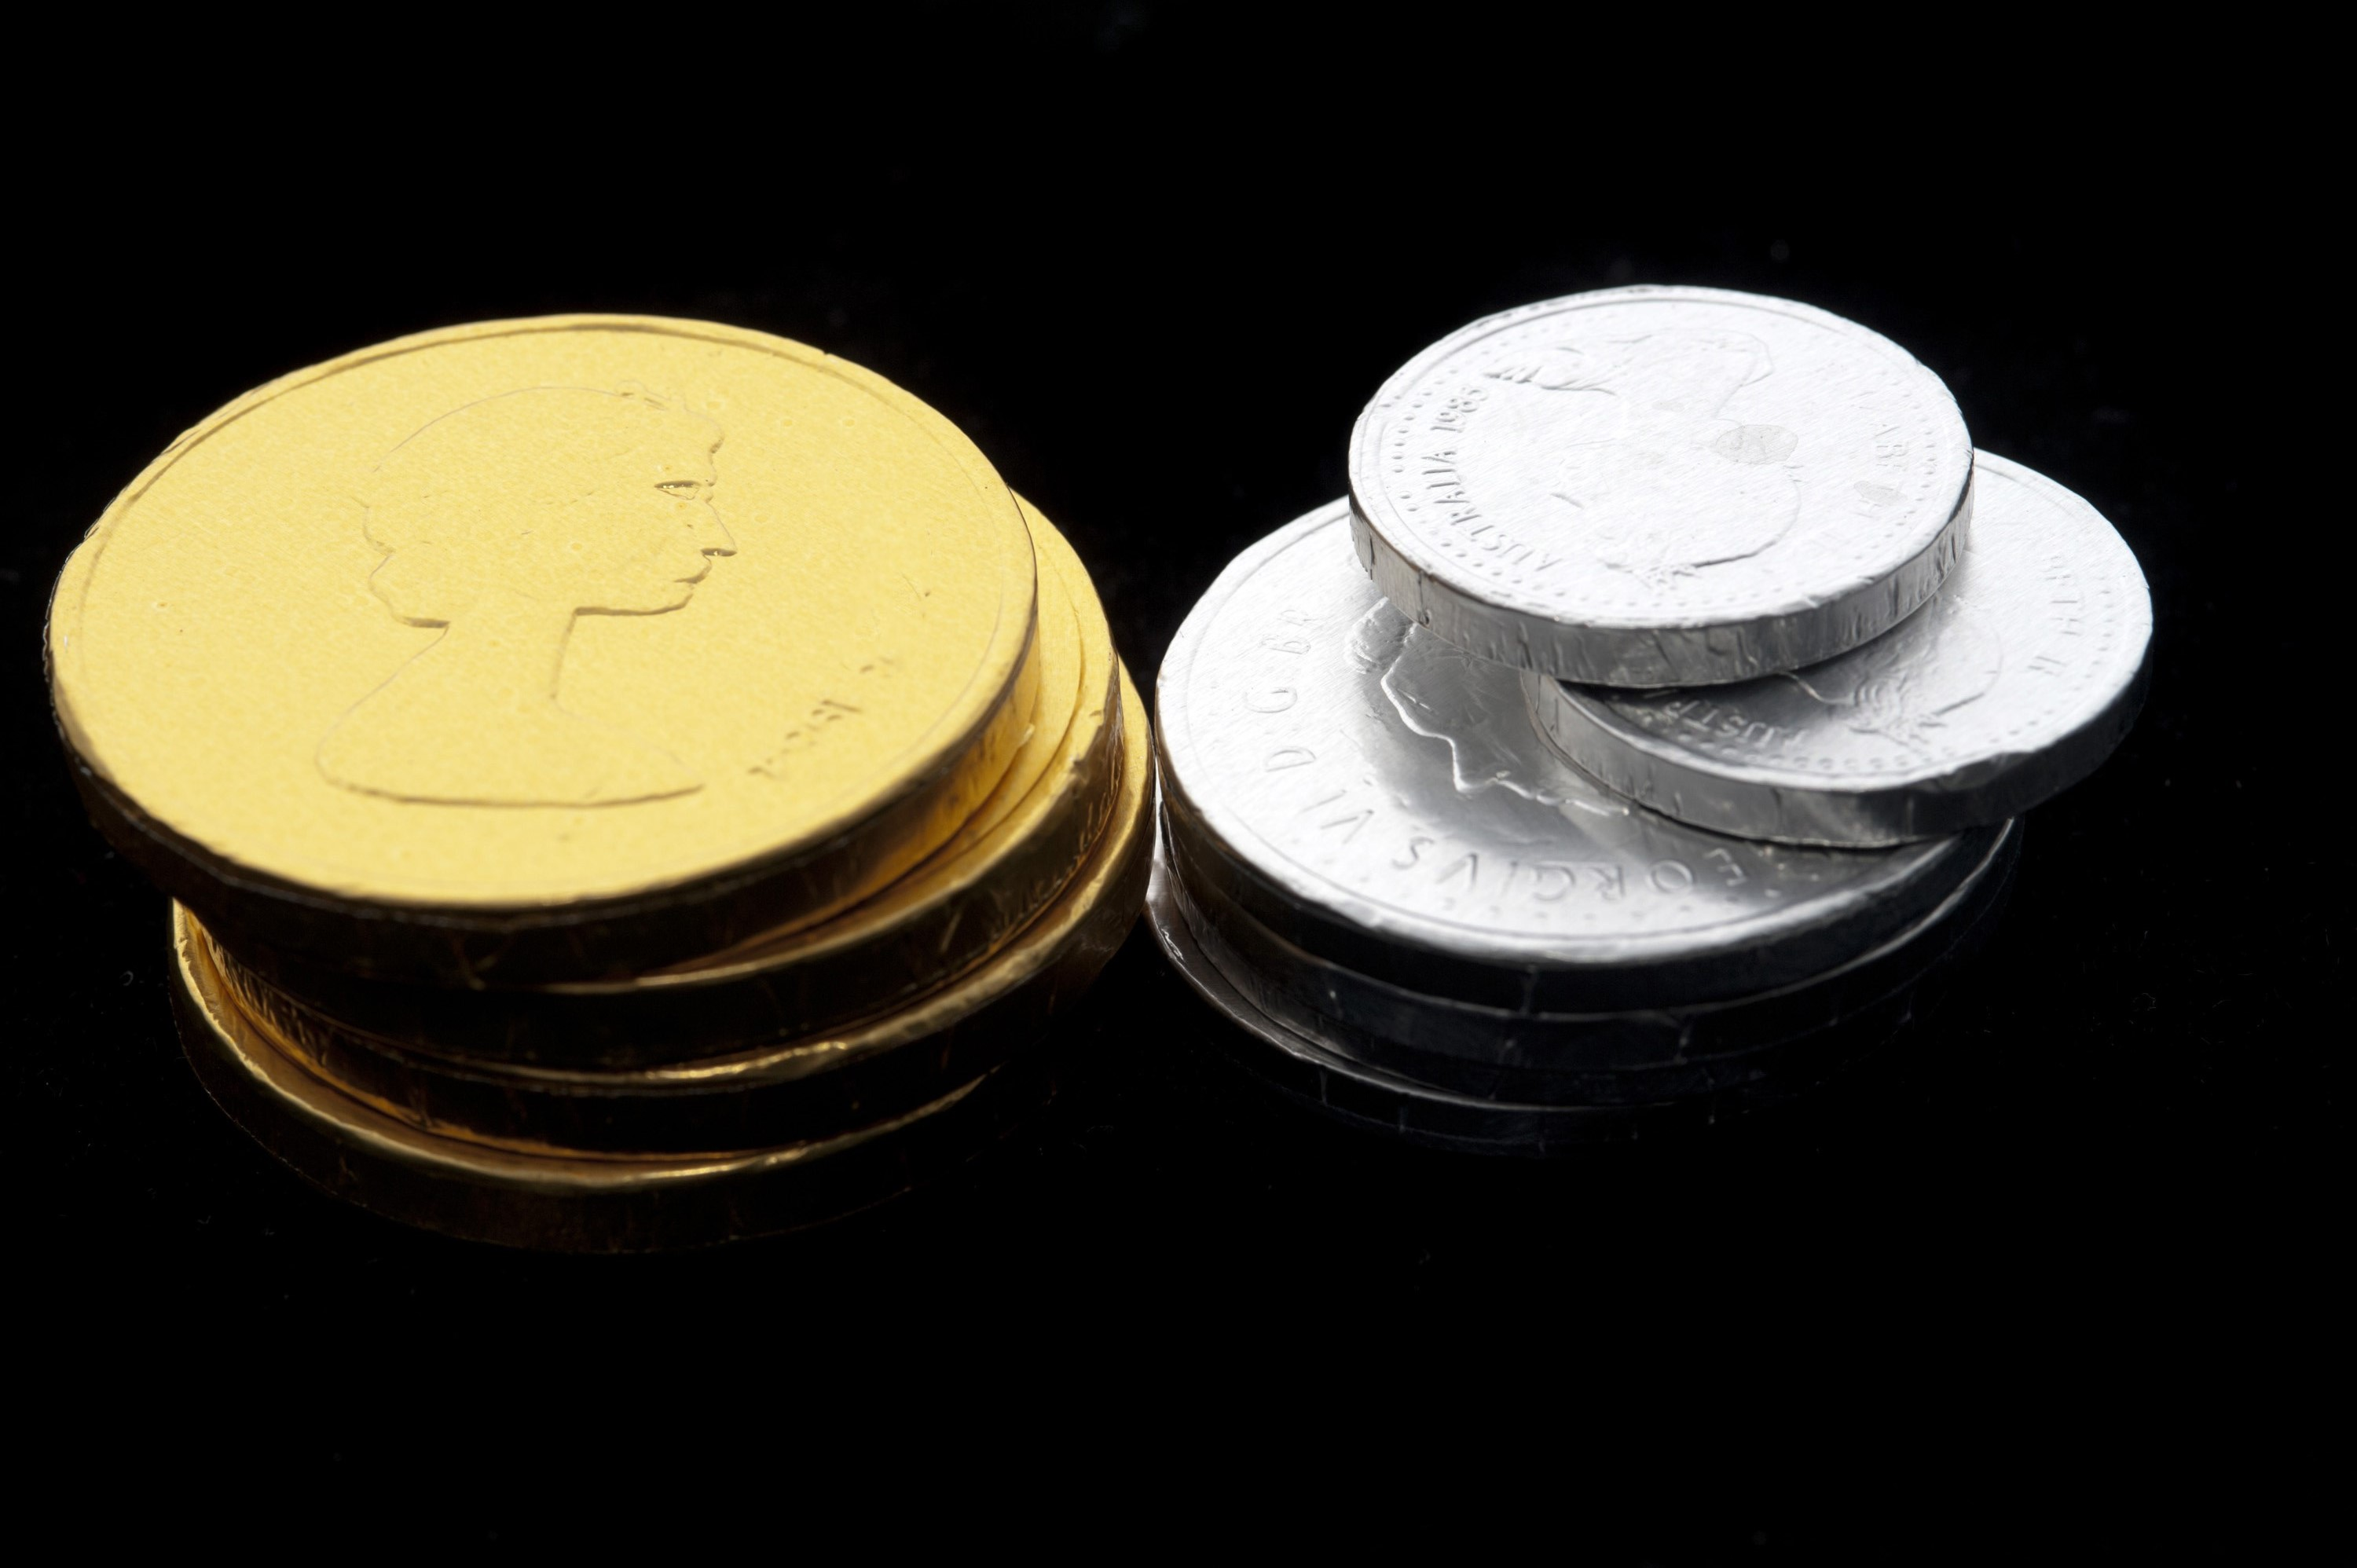 Stacks of chocolate candy coins wrapped in metallic silver and gold foil arranged on a black background